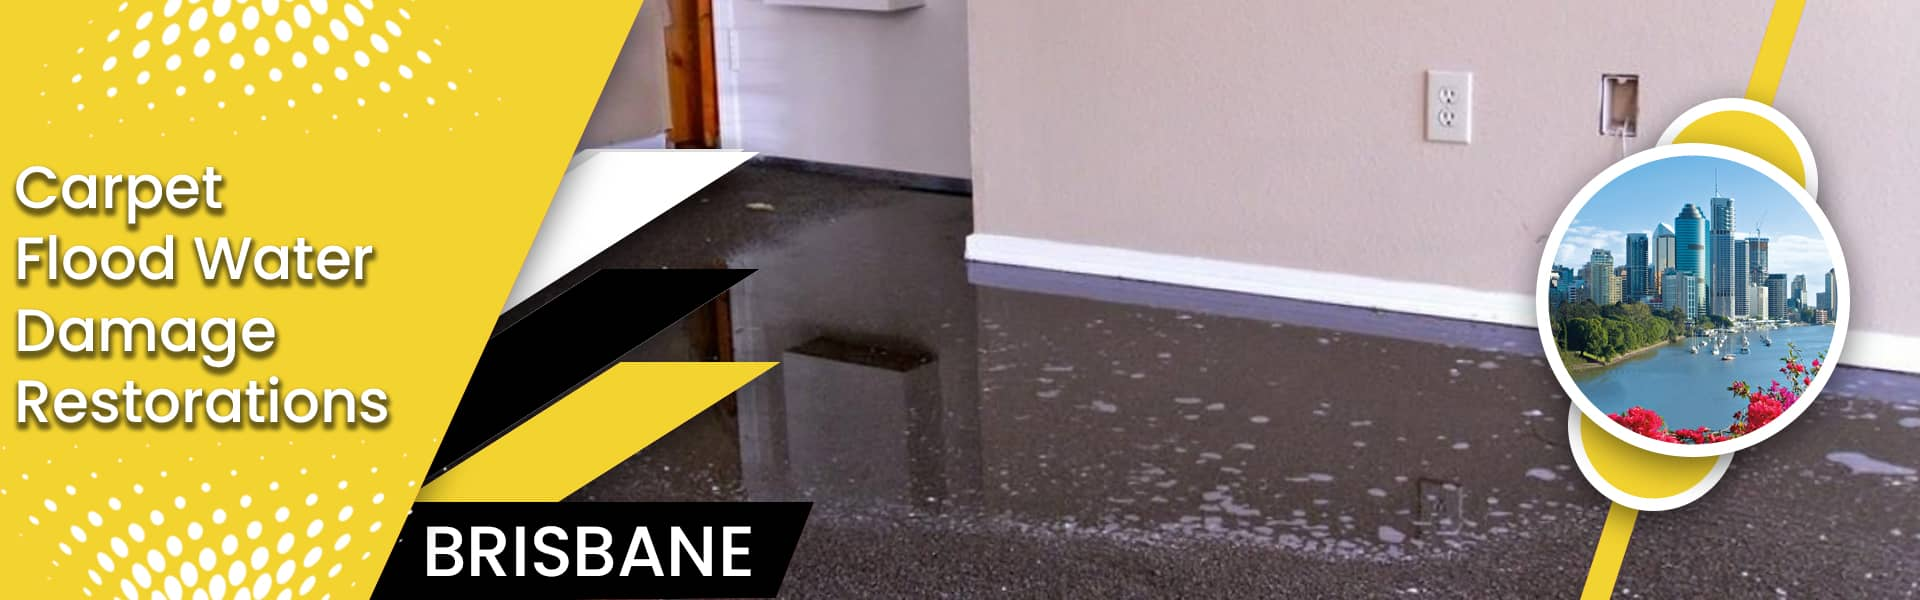 Carpet Flood Water Damage Restorations Brisbane